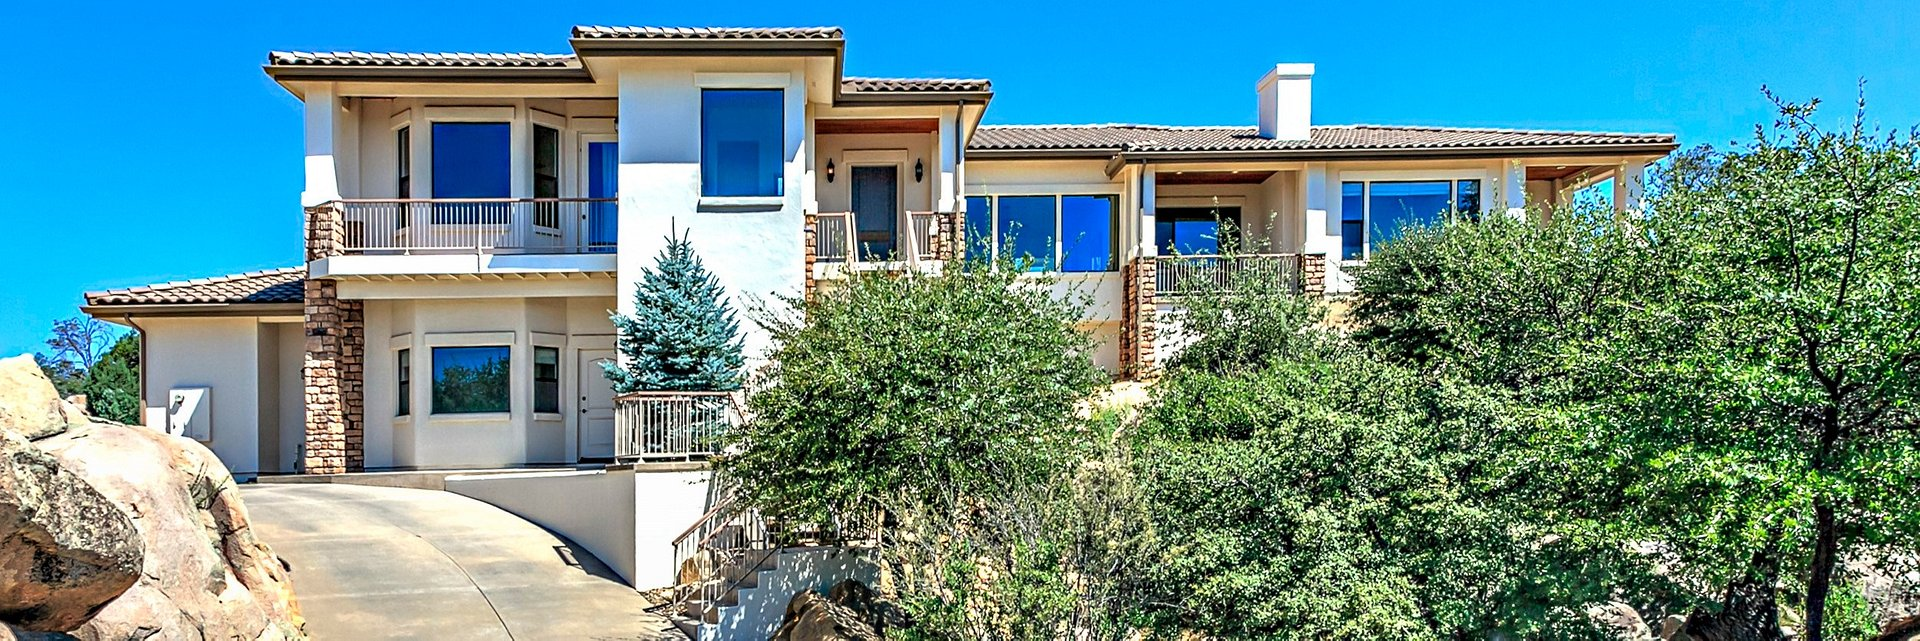 Coldwell Banker Residential Brokerage Lists Prescott Property for $925,000